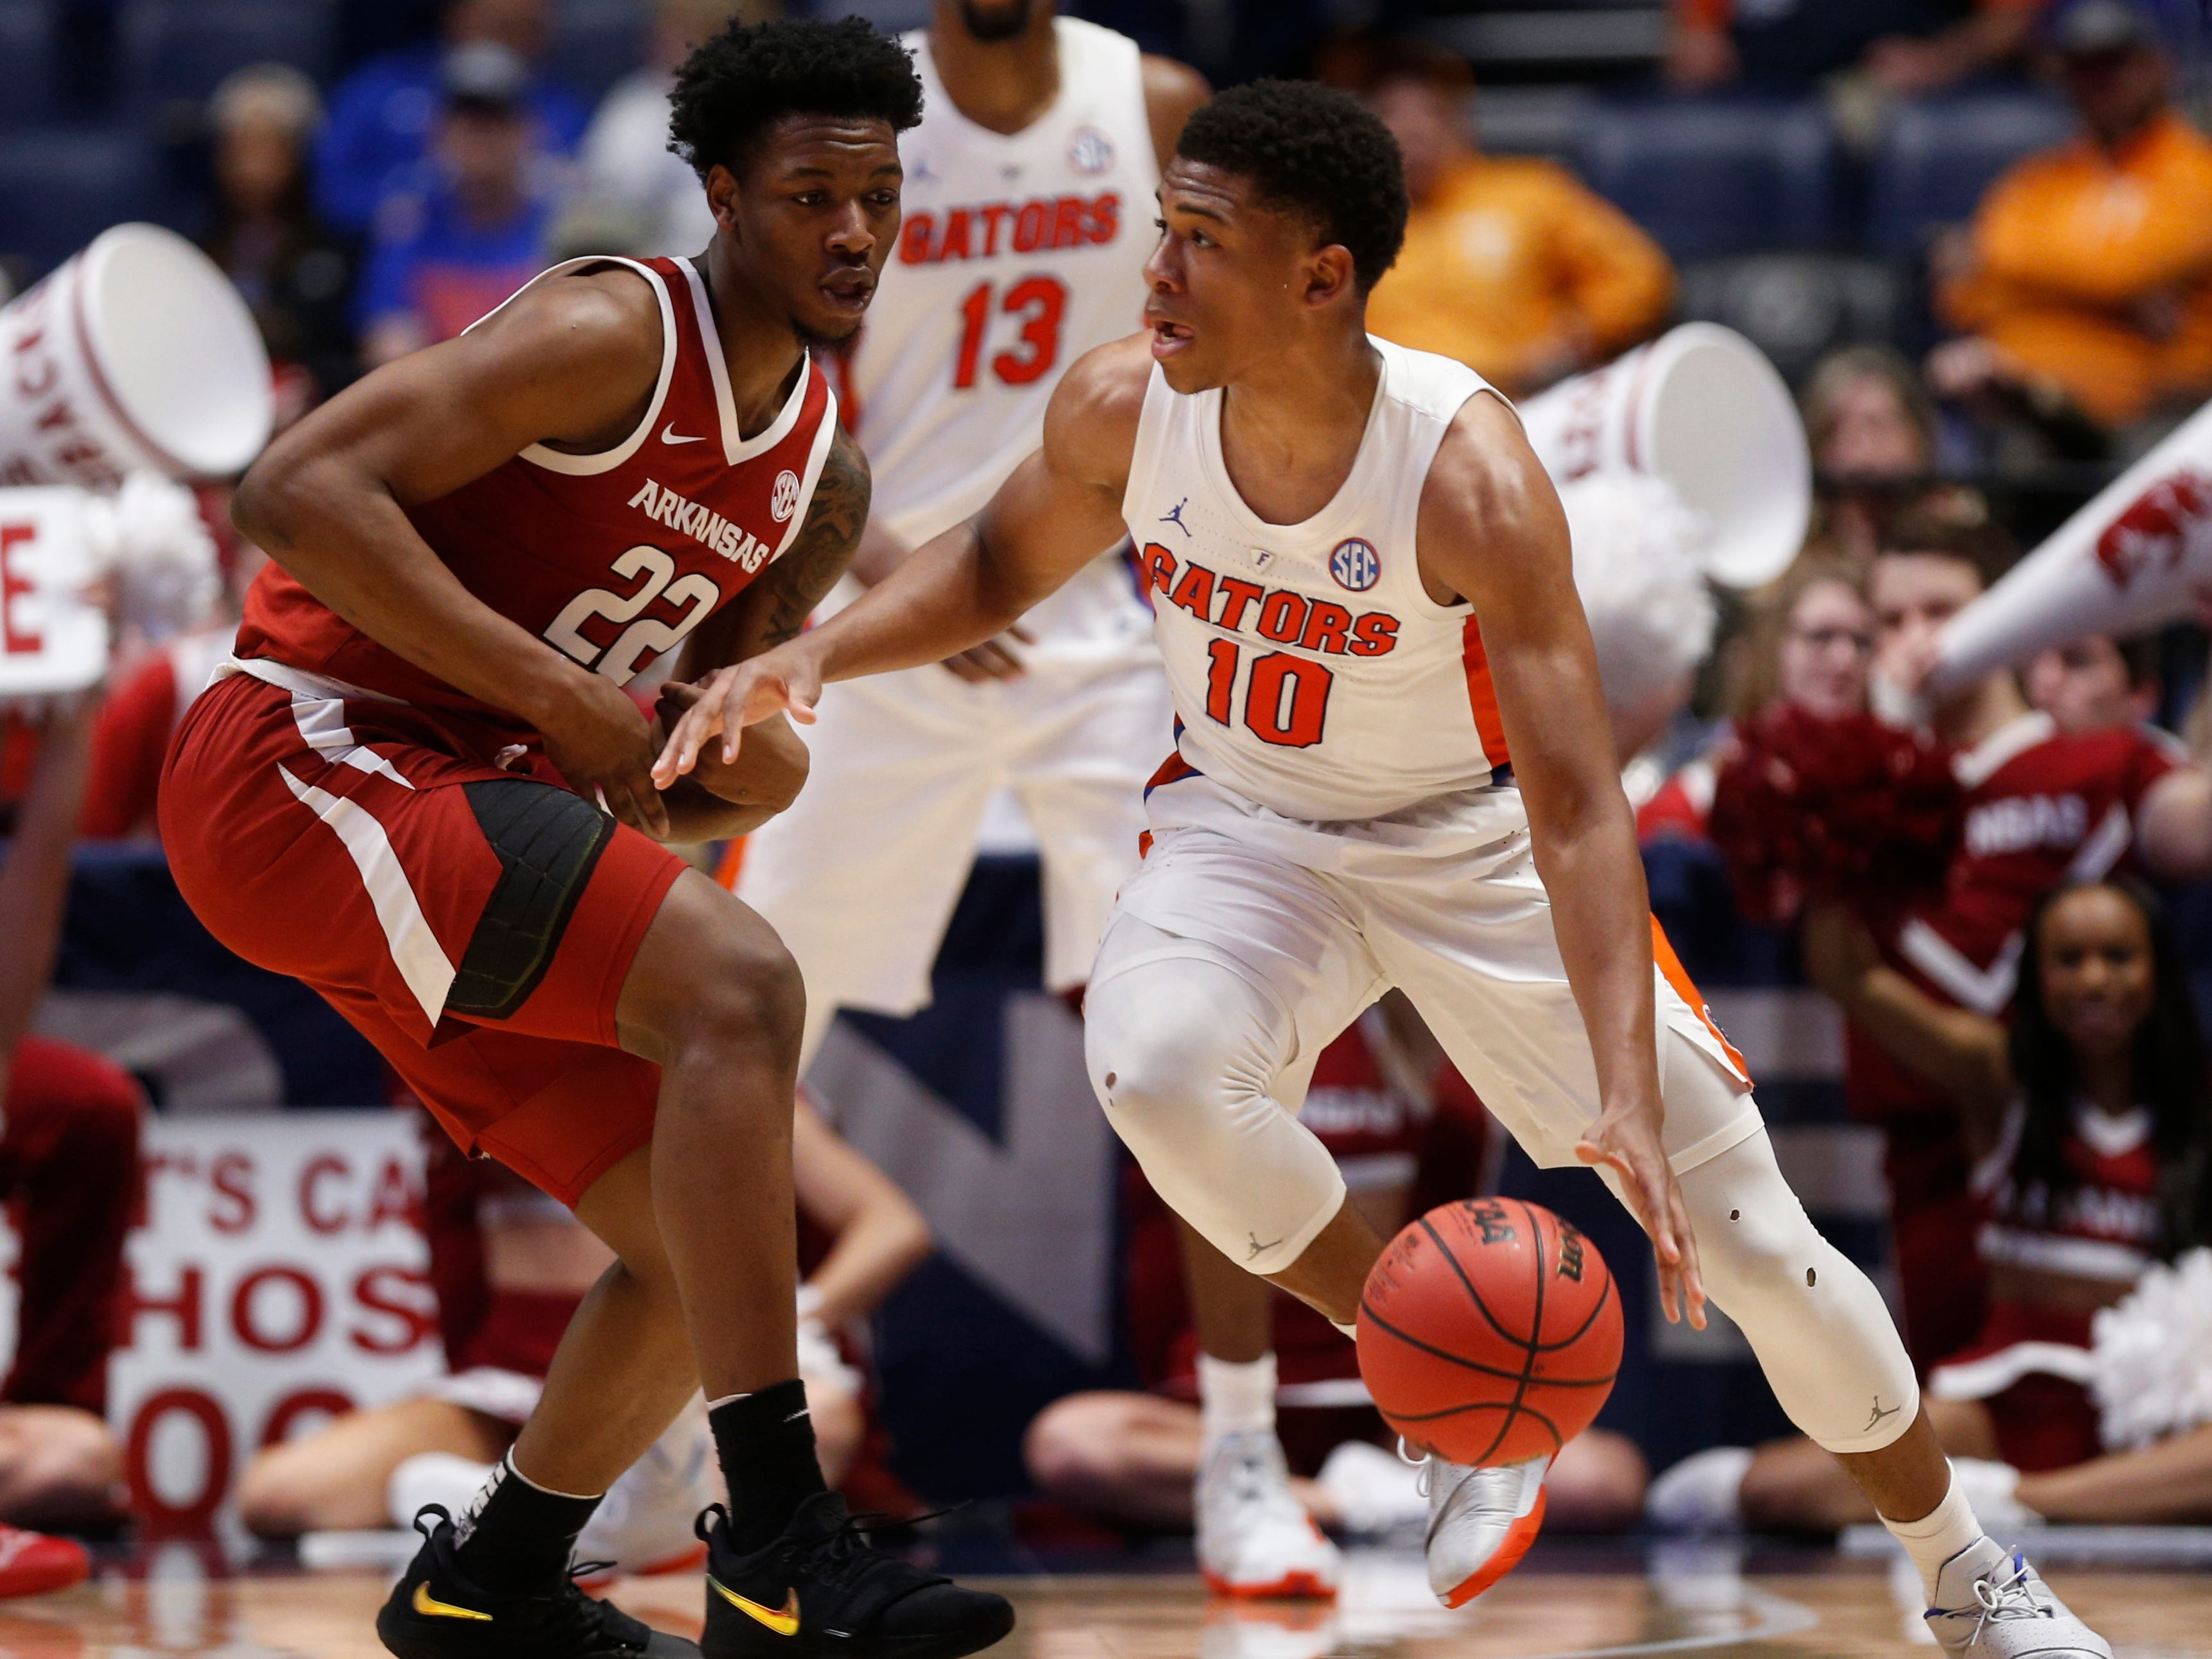 Florida guard Noah Locke (10) moves the ball defended by Arkansas forward Gabe Osabuohien (22) during the first half of the SEC Men's Basketball Tournament game at Bridgestone Arena in Nashville, Tenn., Thursday, March 14, 2019.